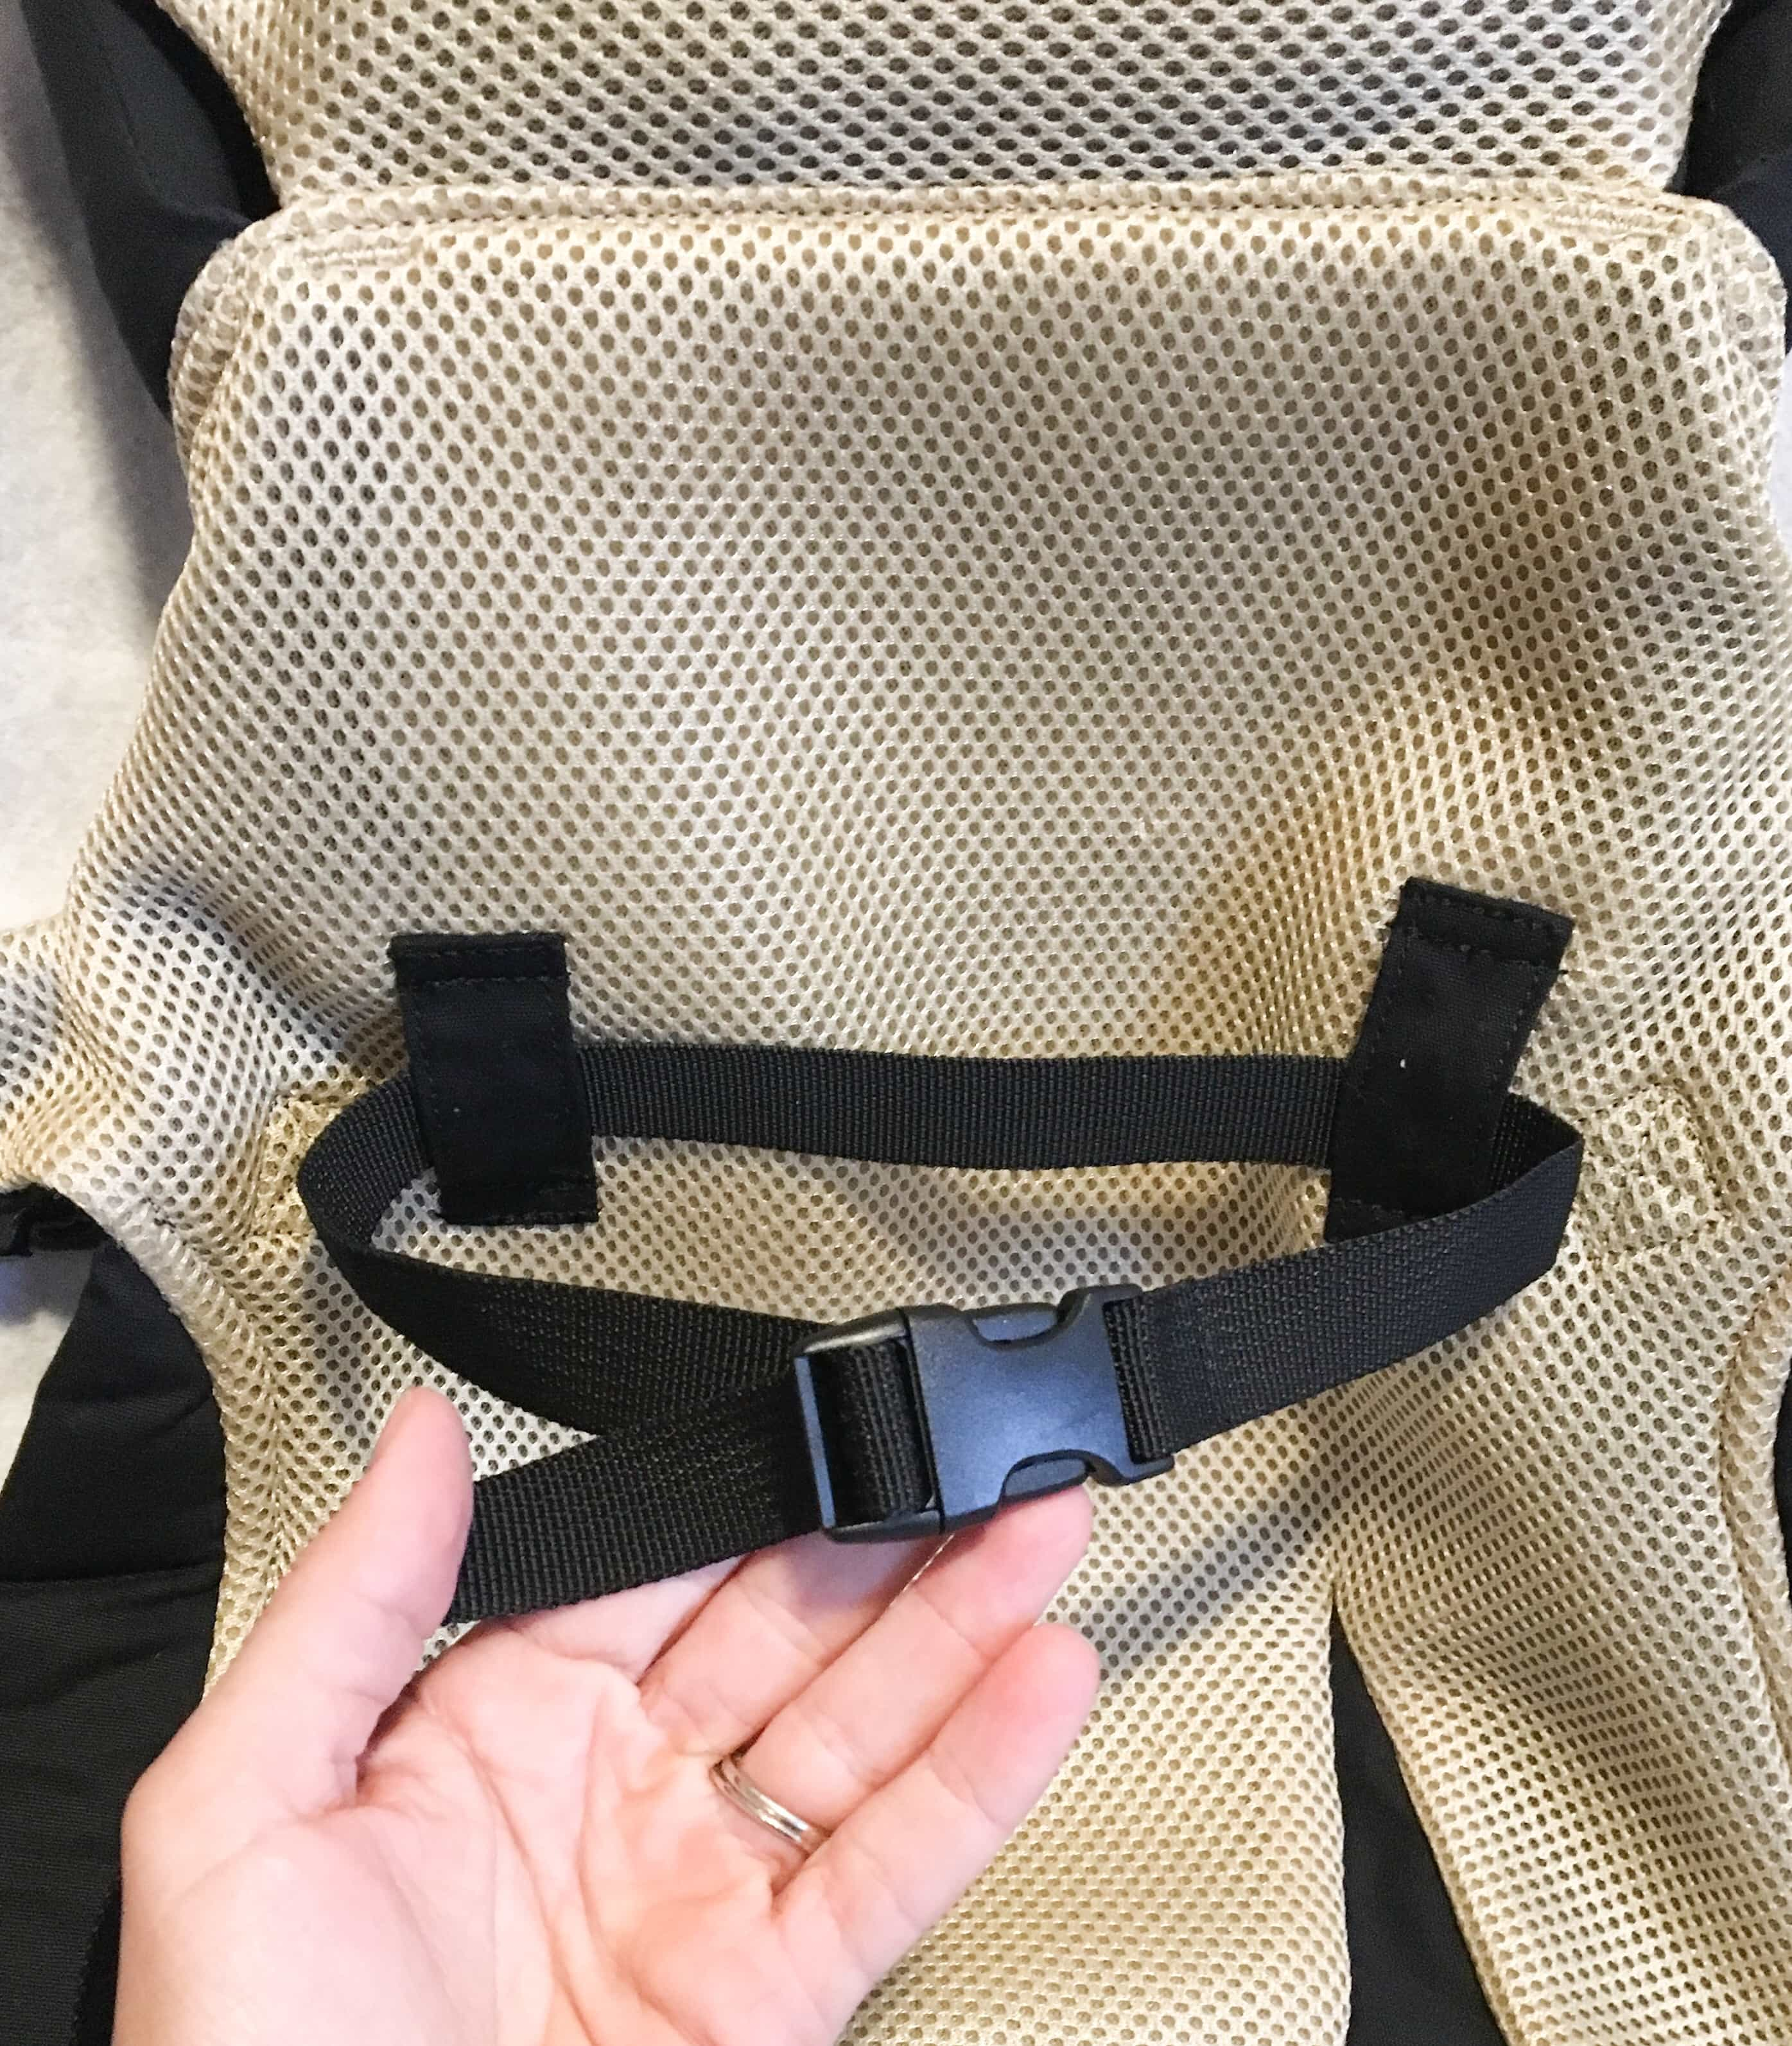 The baby carrier that has it all! I love the versatility and comfort for parent and child! From infant to toddler, this carrier is all you'll need!